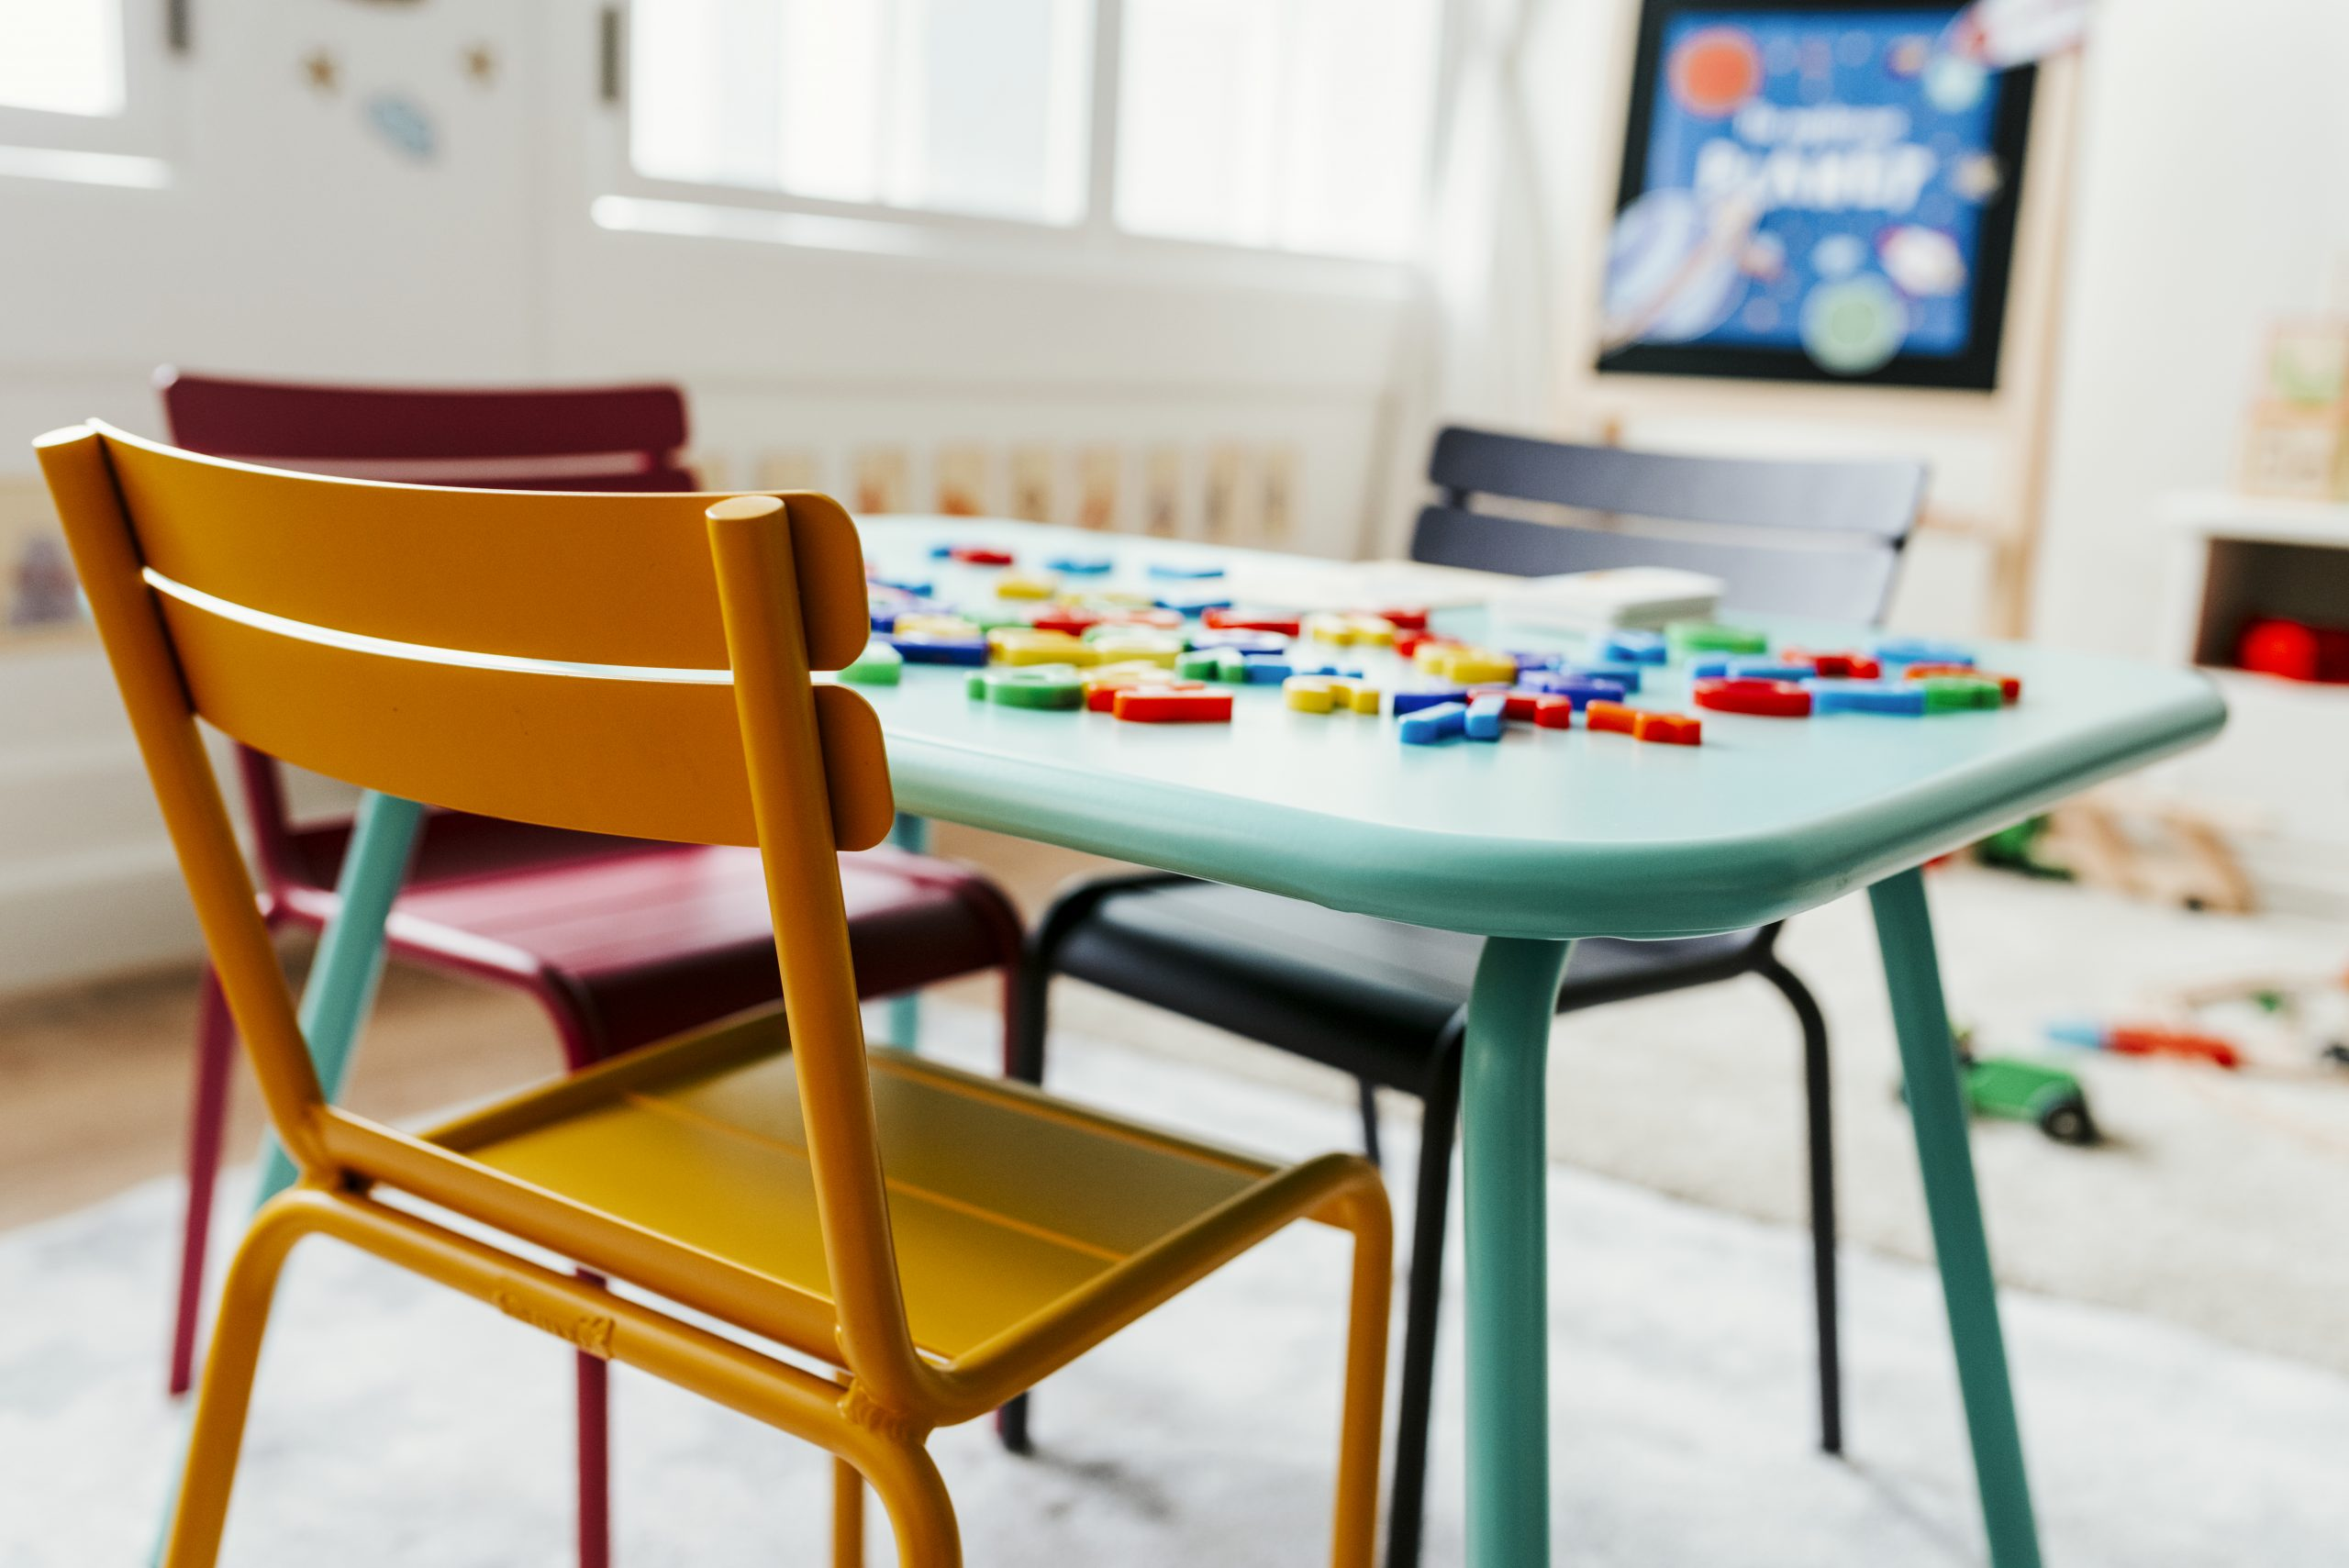 Nursery-Cleaning-Services-London